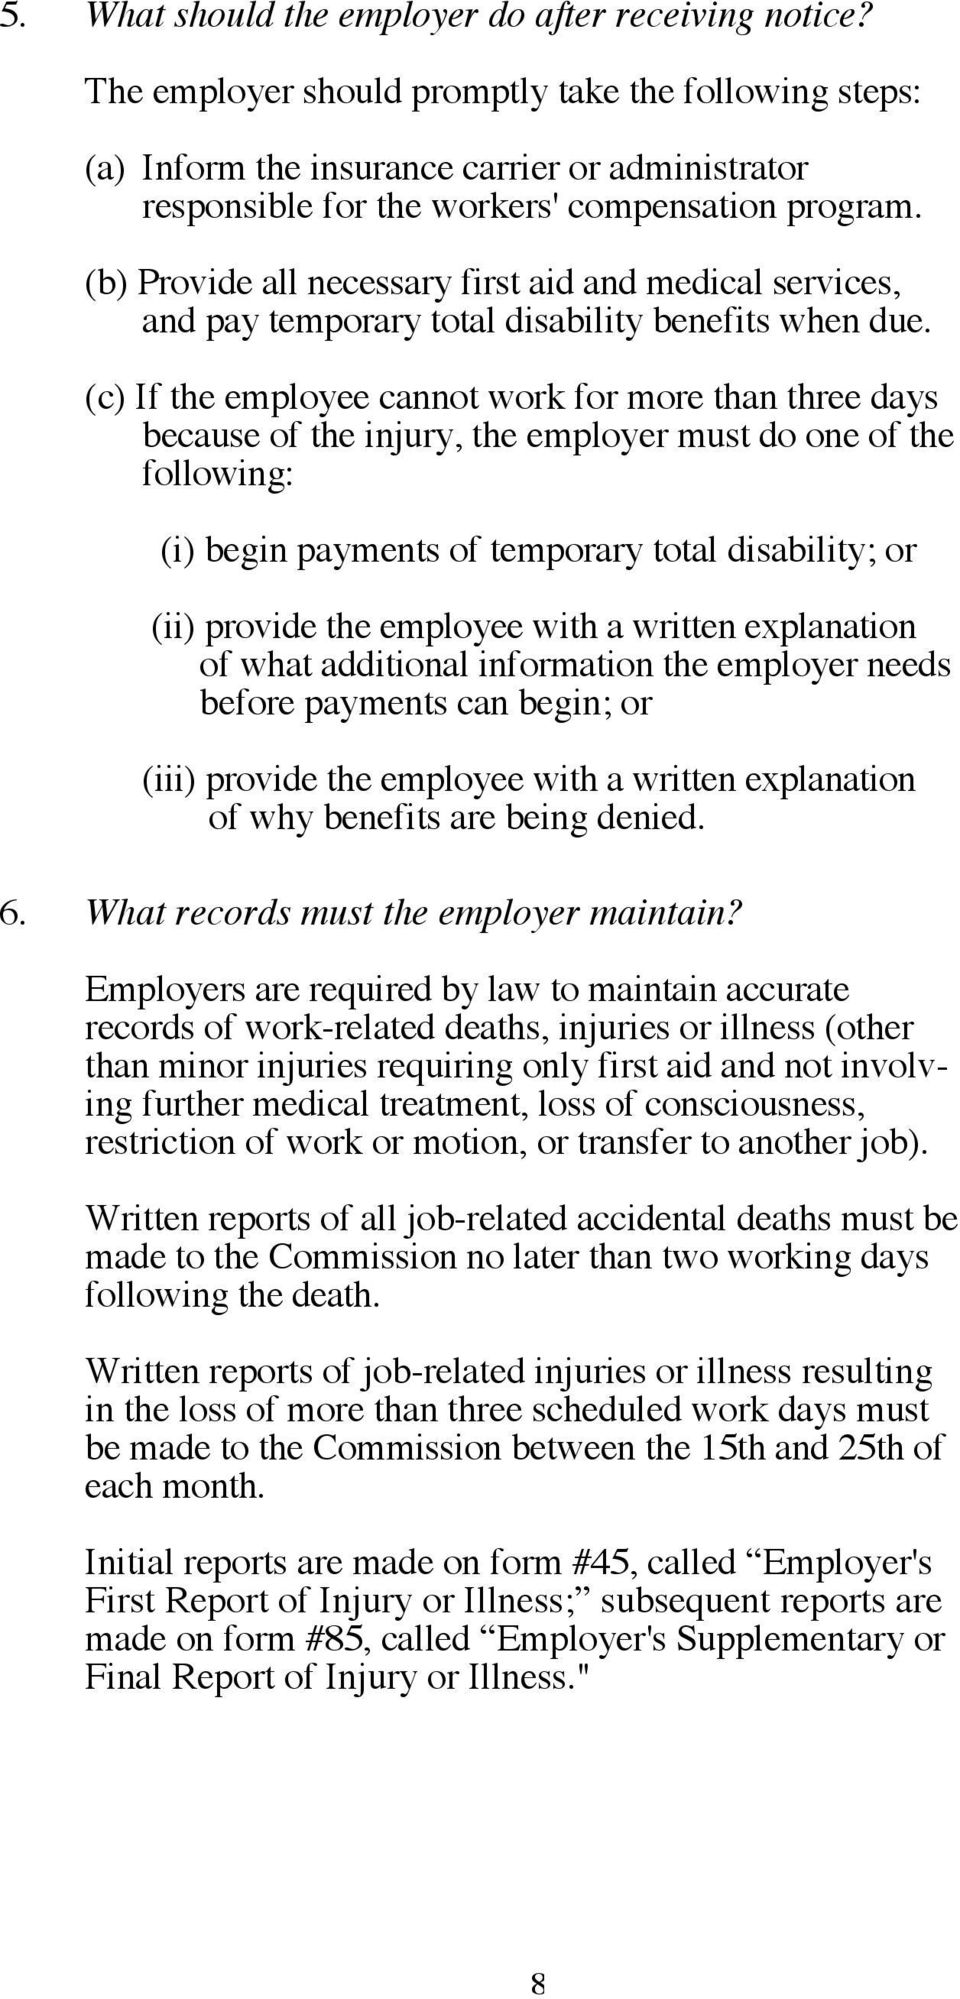 (b) Provide all necessary first aid and medical services, and pay temporary total disability benefits when due.